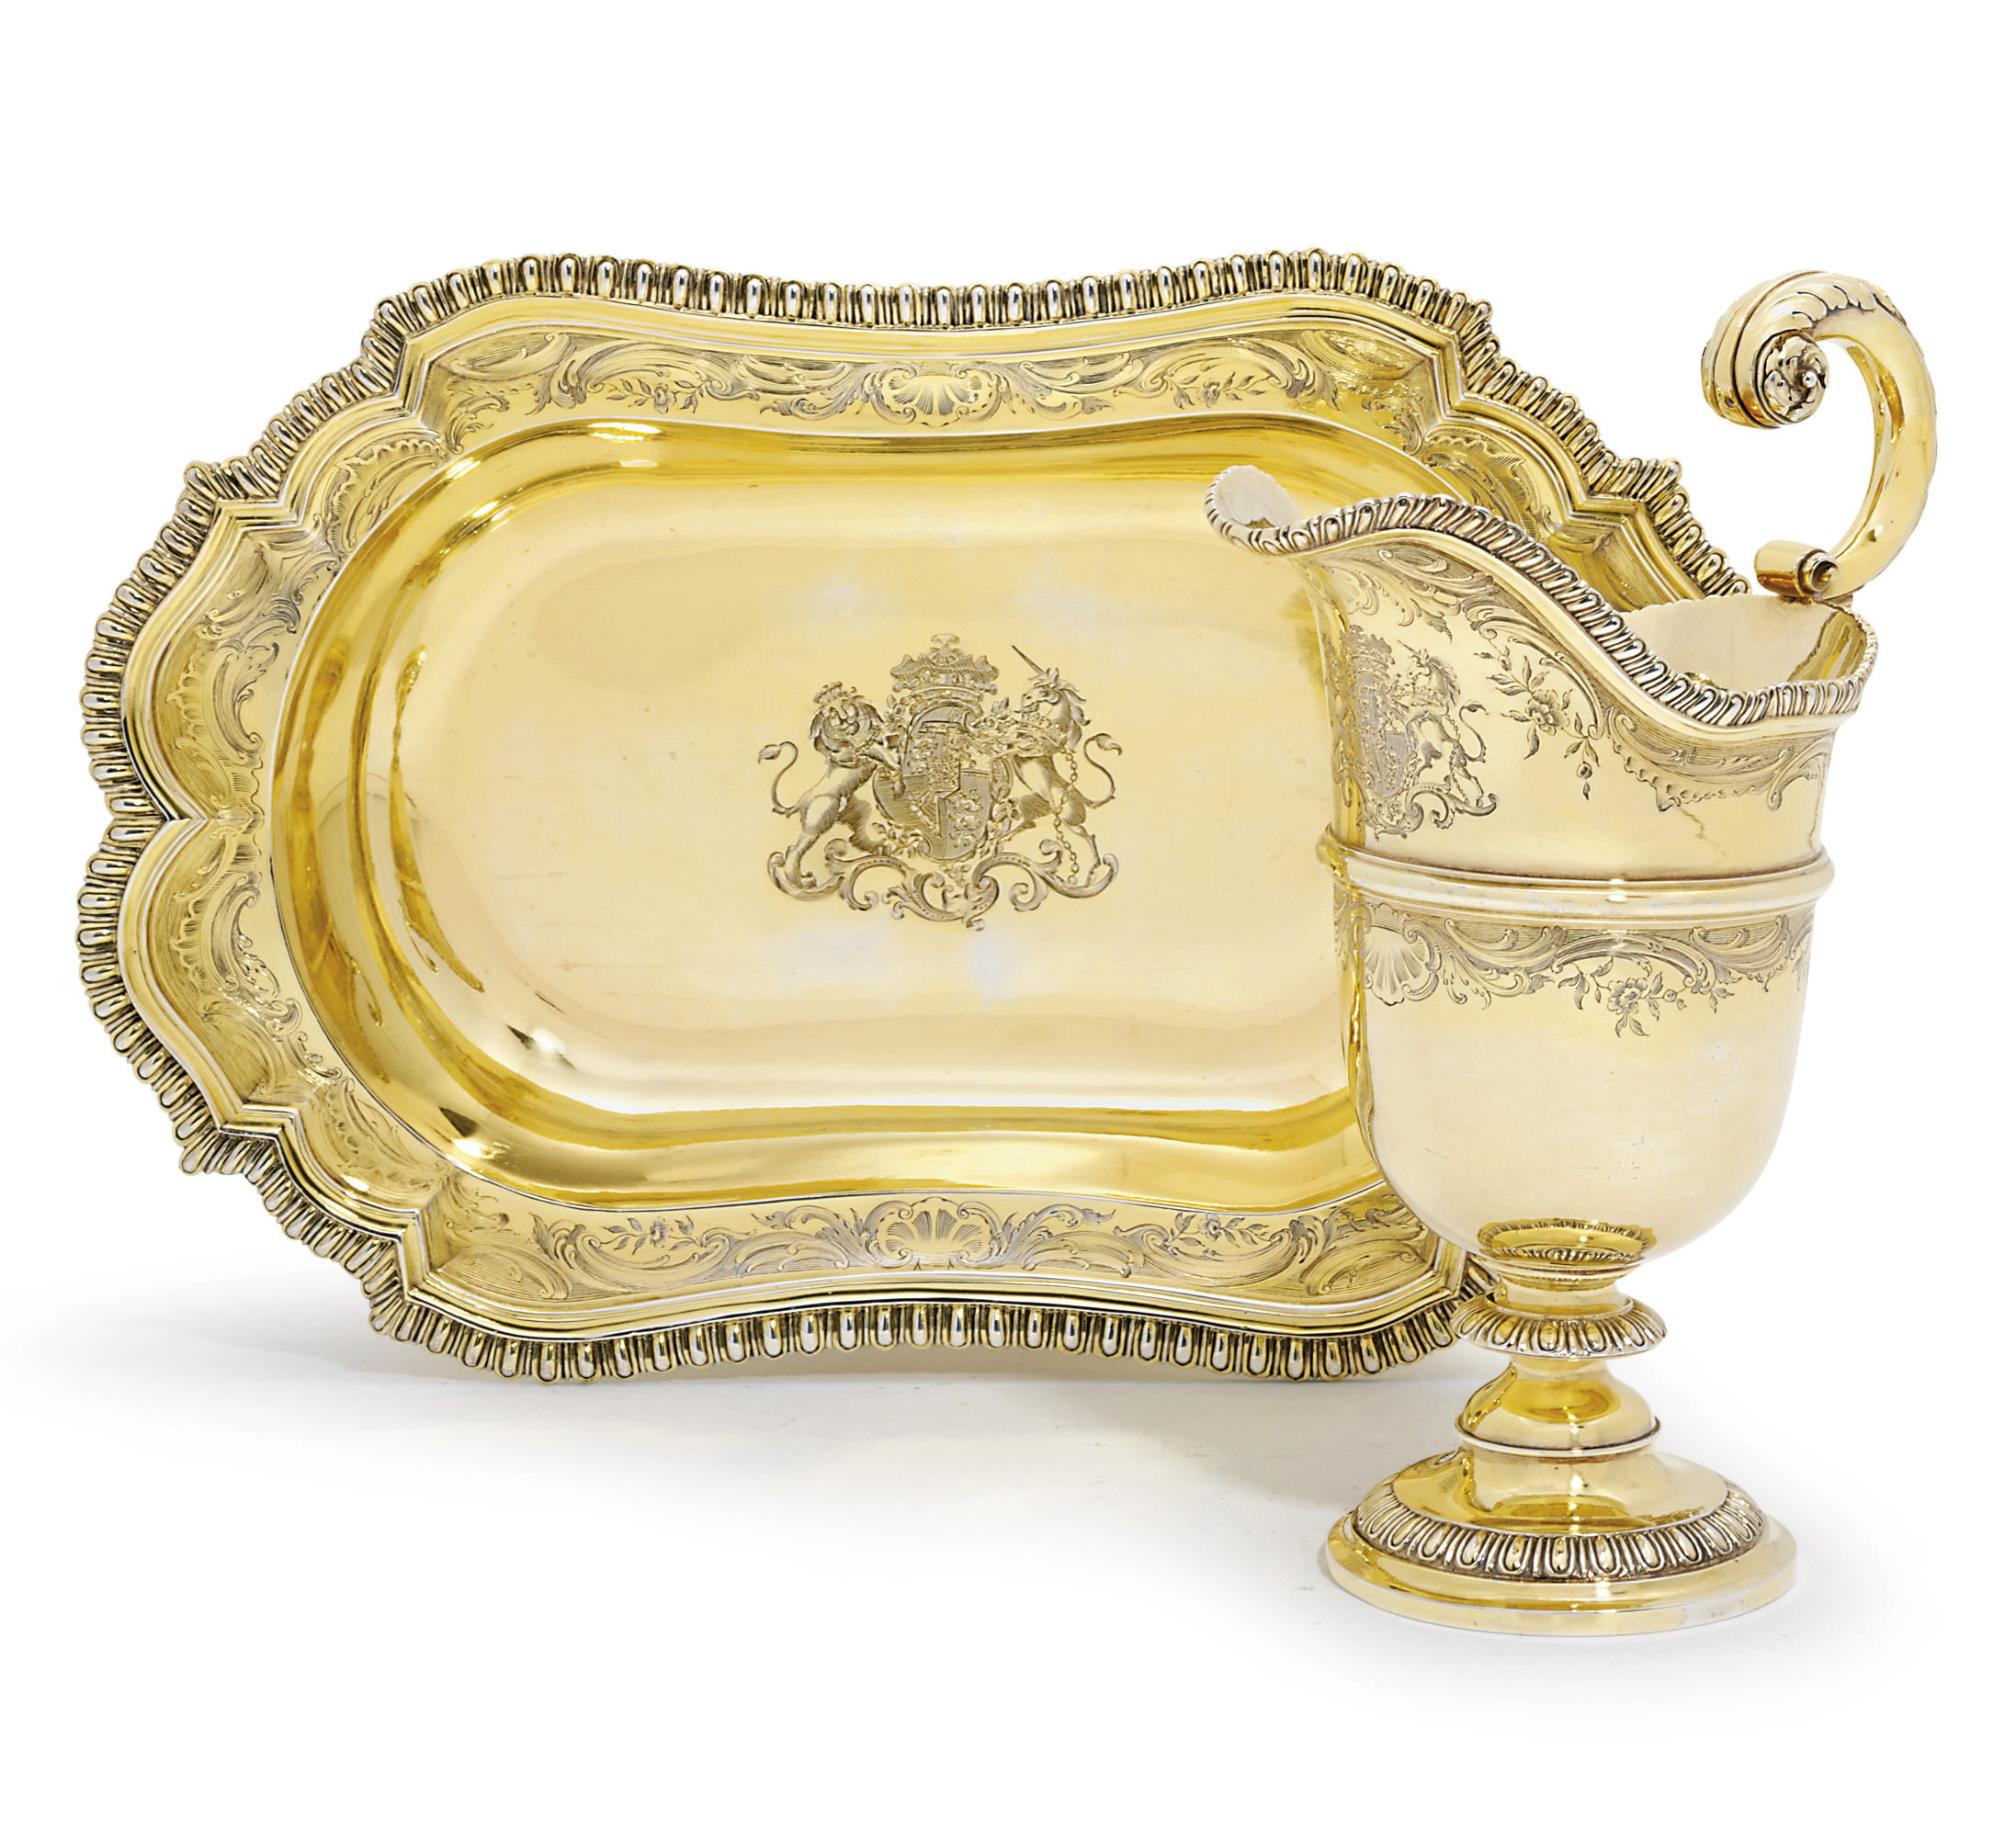 A GEORGE IV ROYAL SILVER-GILT EWER AND BASIN